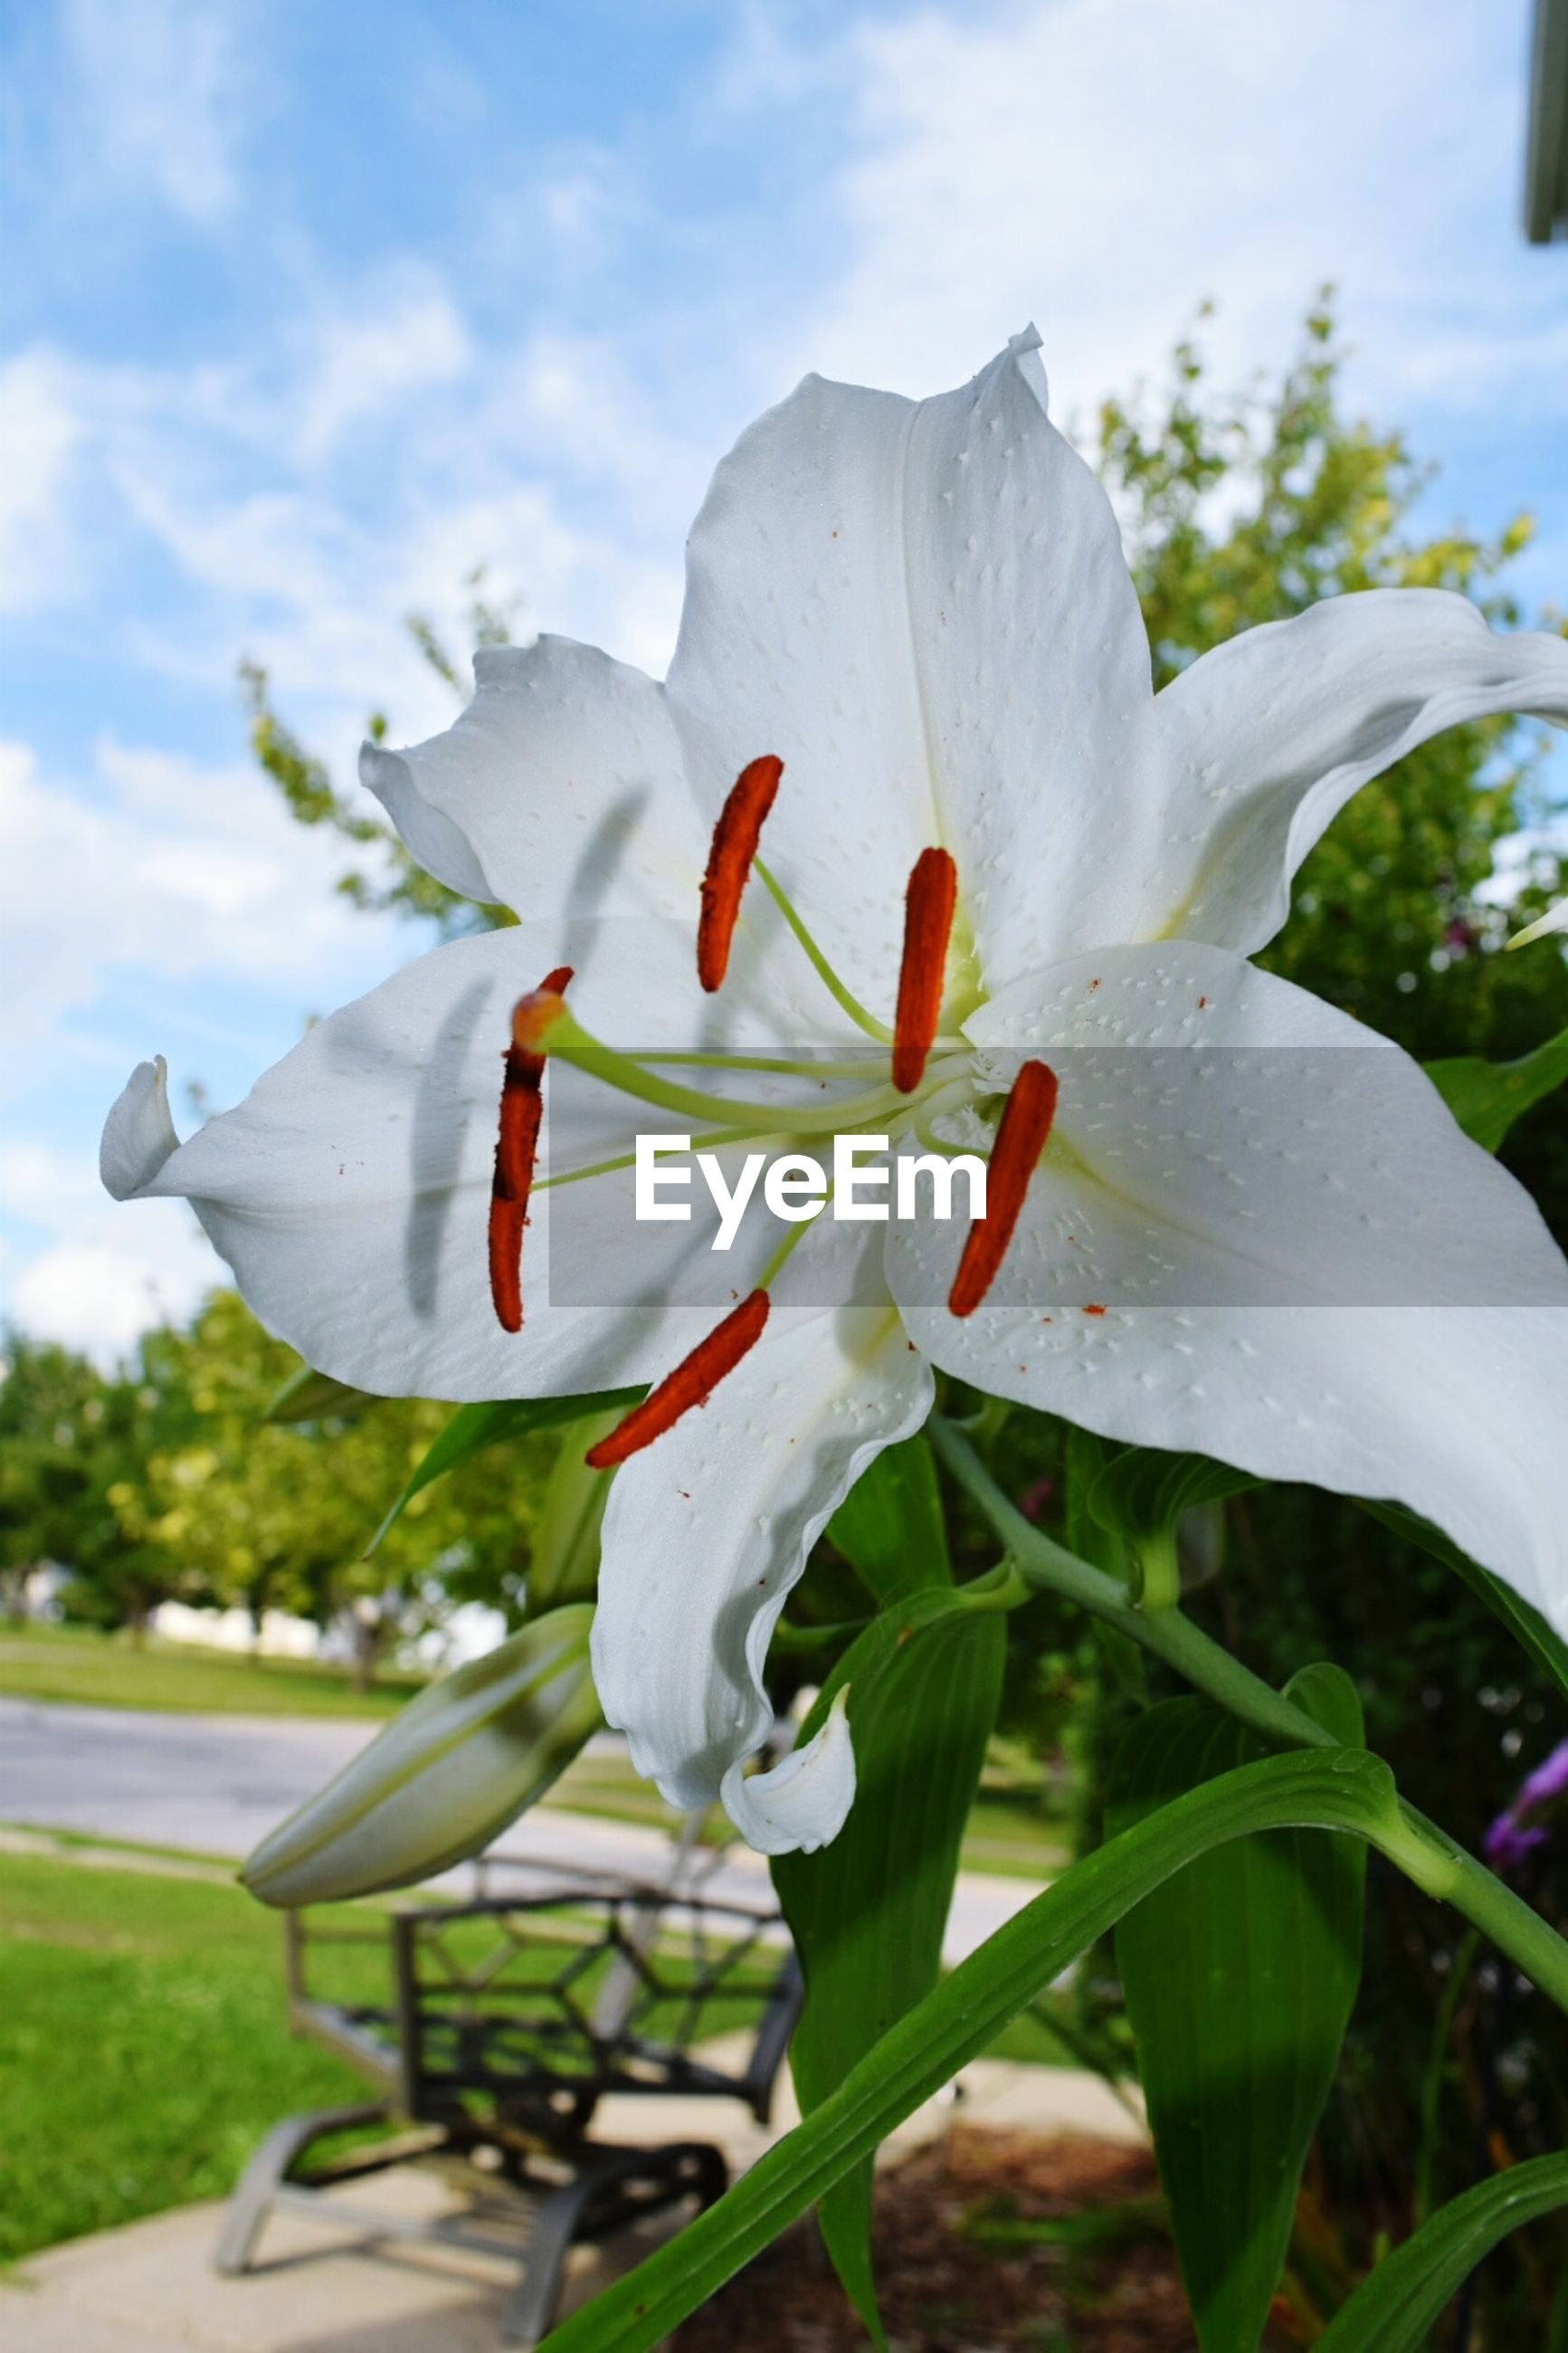 flower, petal, freshness, flower head, fragility, white color, growth, beauty in nature, close-up, blooming, focus on foreground, nature, pollen, plant, in bloom, stamen, day, blossom, stem, no people, sky, outdoors, white, botany, selective focus, softness